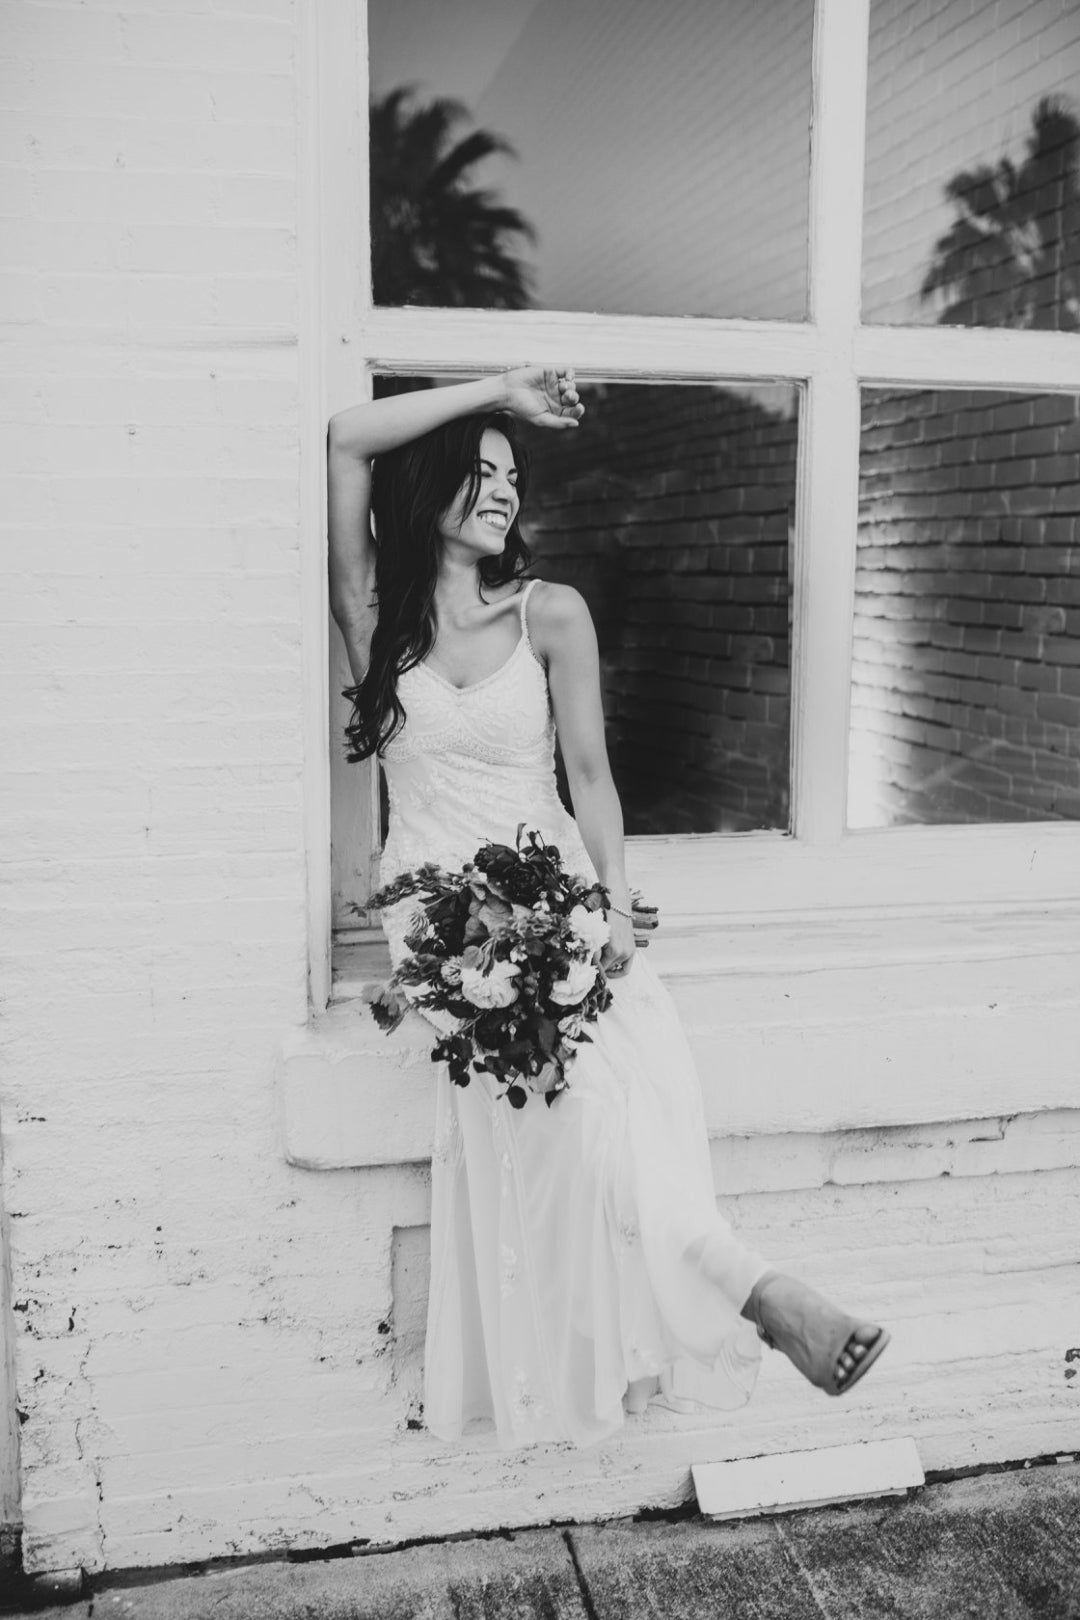 Black and white photo of a bride holding a bouquet while posing in front of a window